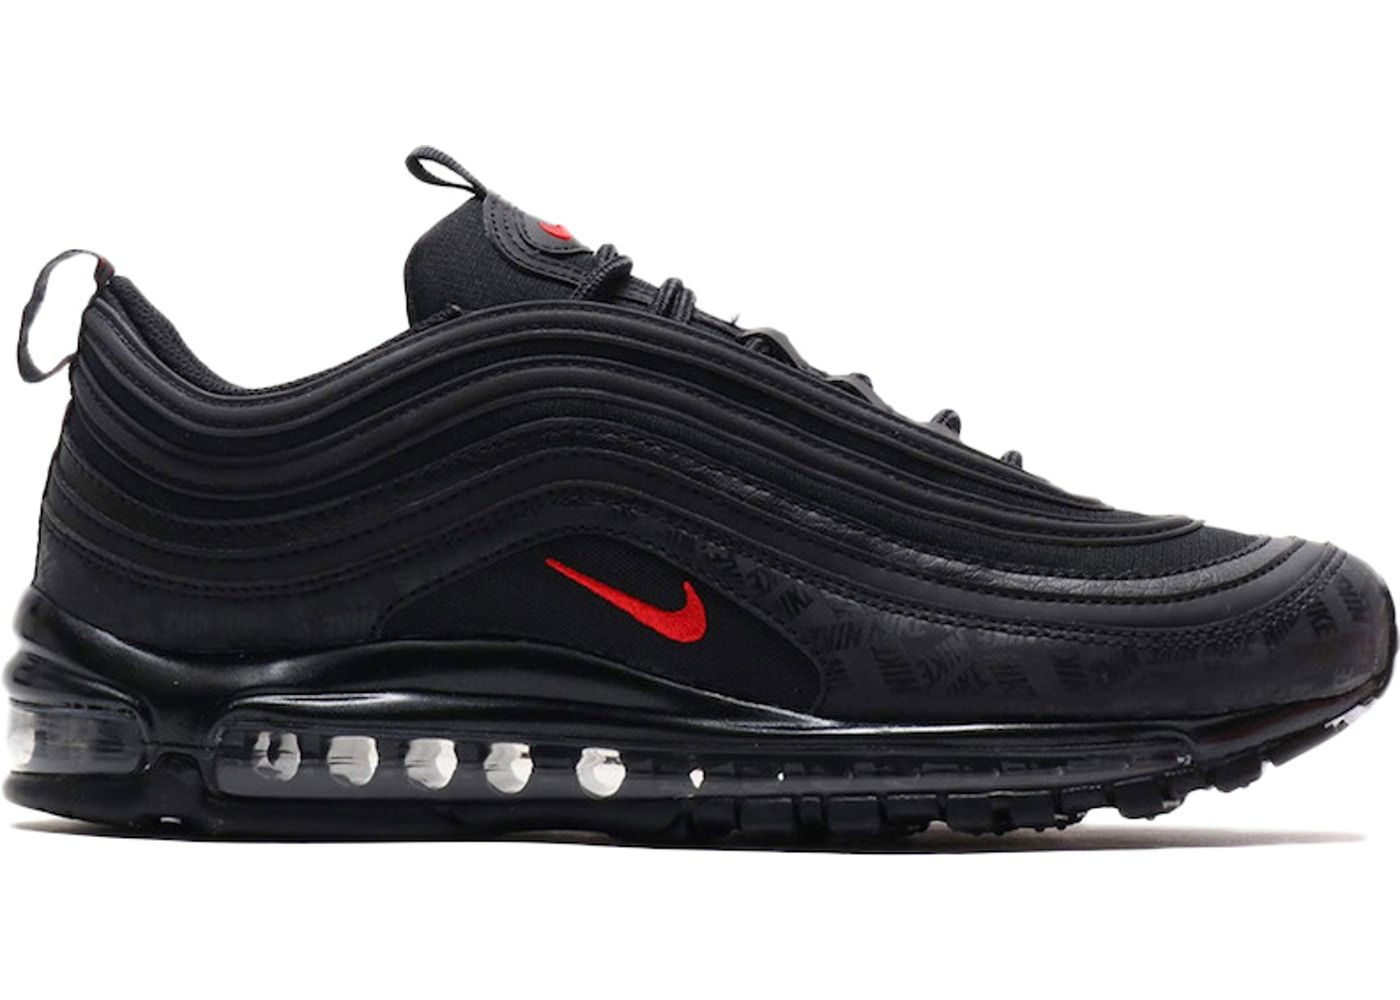 Nike Air Max 97 All Over Print Black Red In 2020 Nike Shoes Air Max Nike Air Max 97 Nike Fashion Sneakers